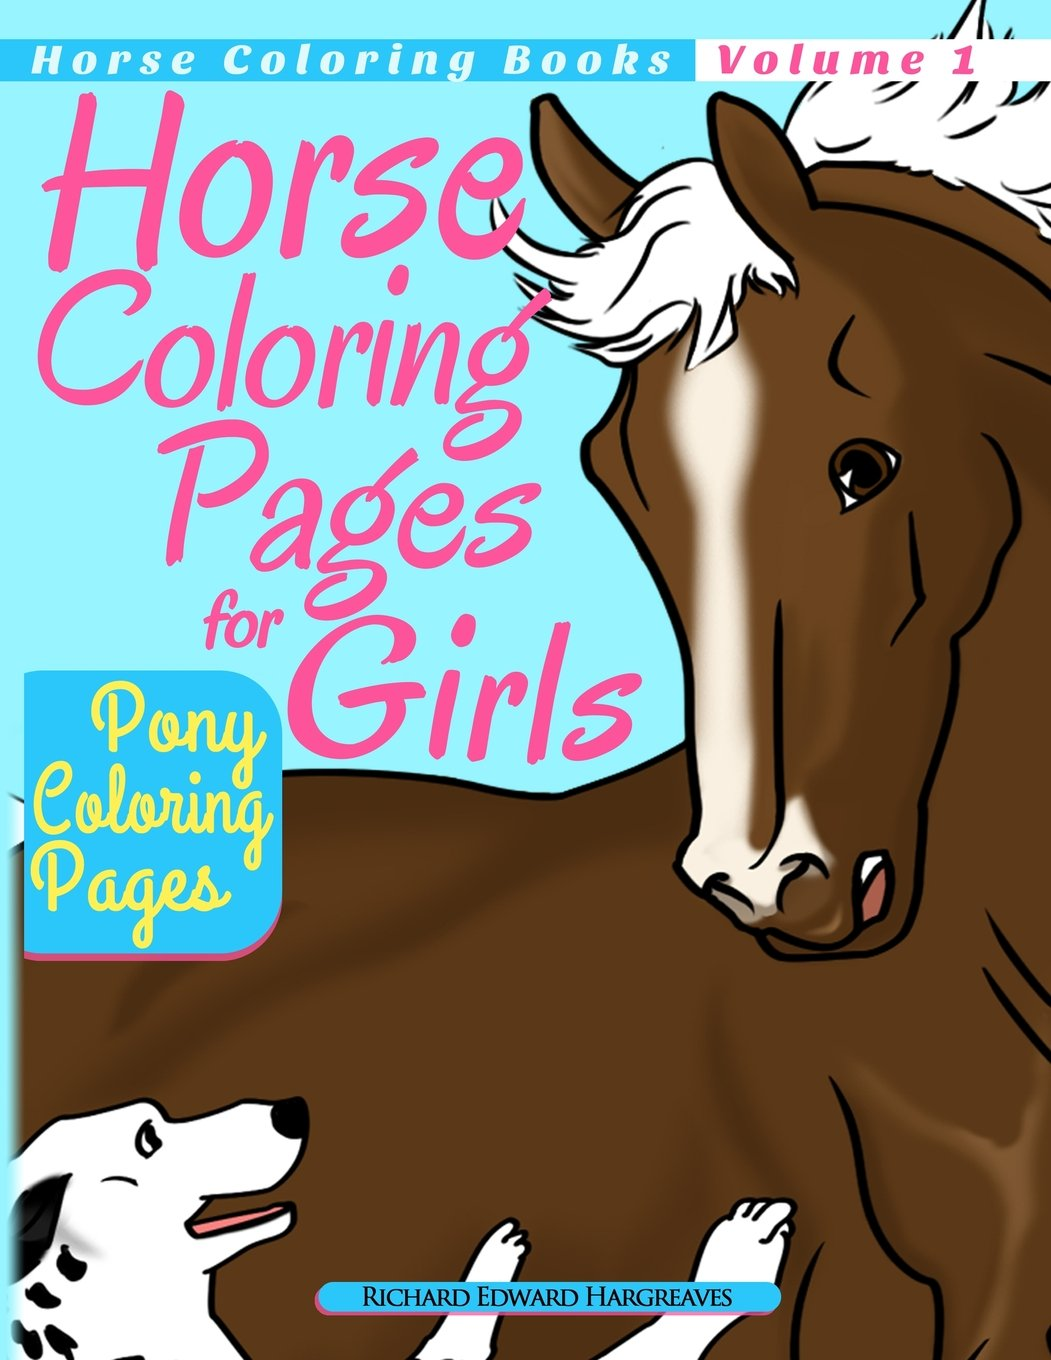 Horse Coloring Pages for Girls - Pony Coloring Pages (Horse Coloring ...